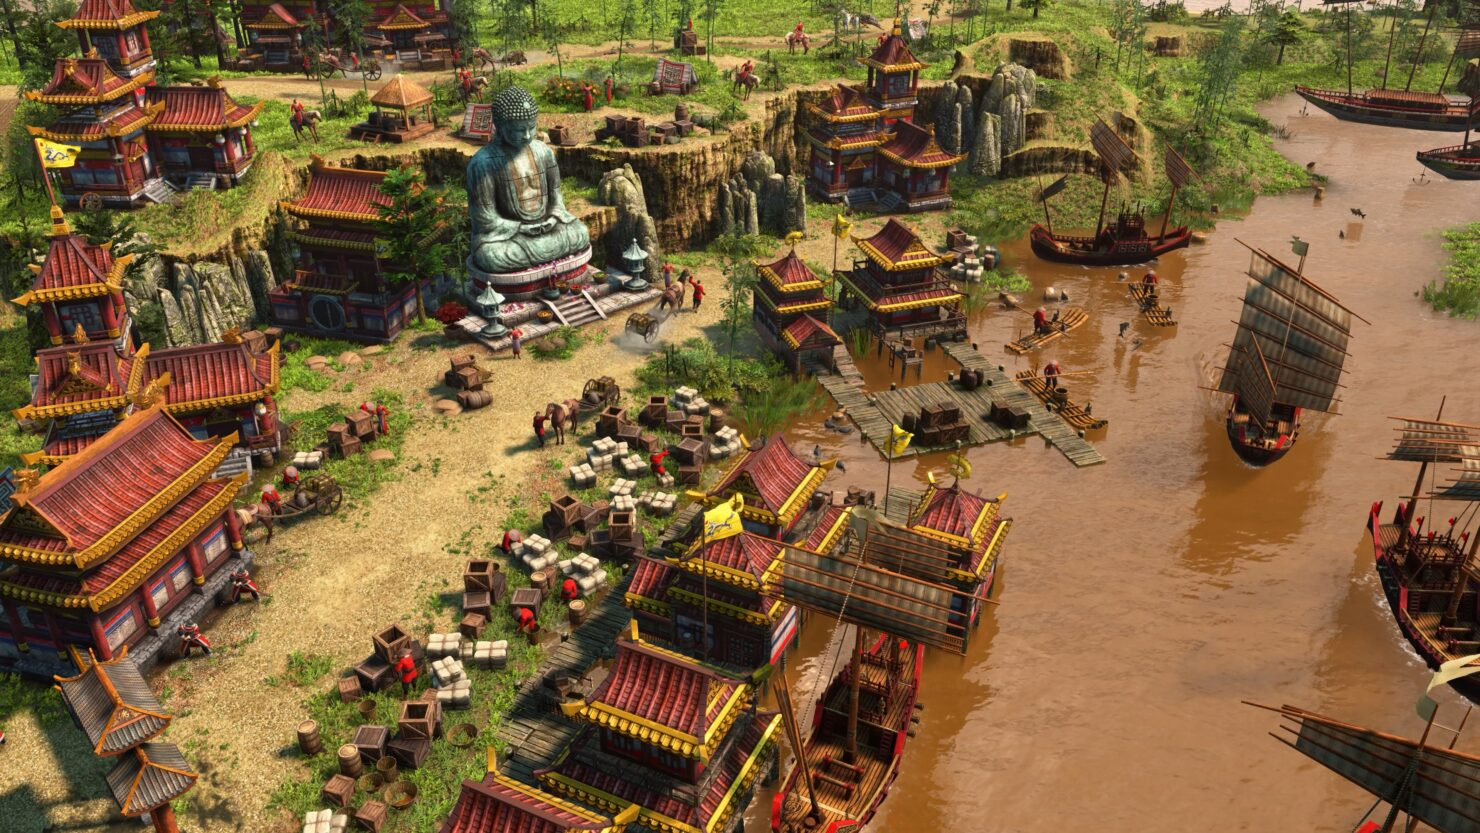 age-of-empires-iii-definitive-edition-preview-05-asset-4